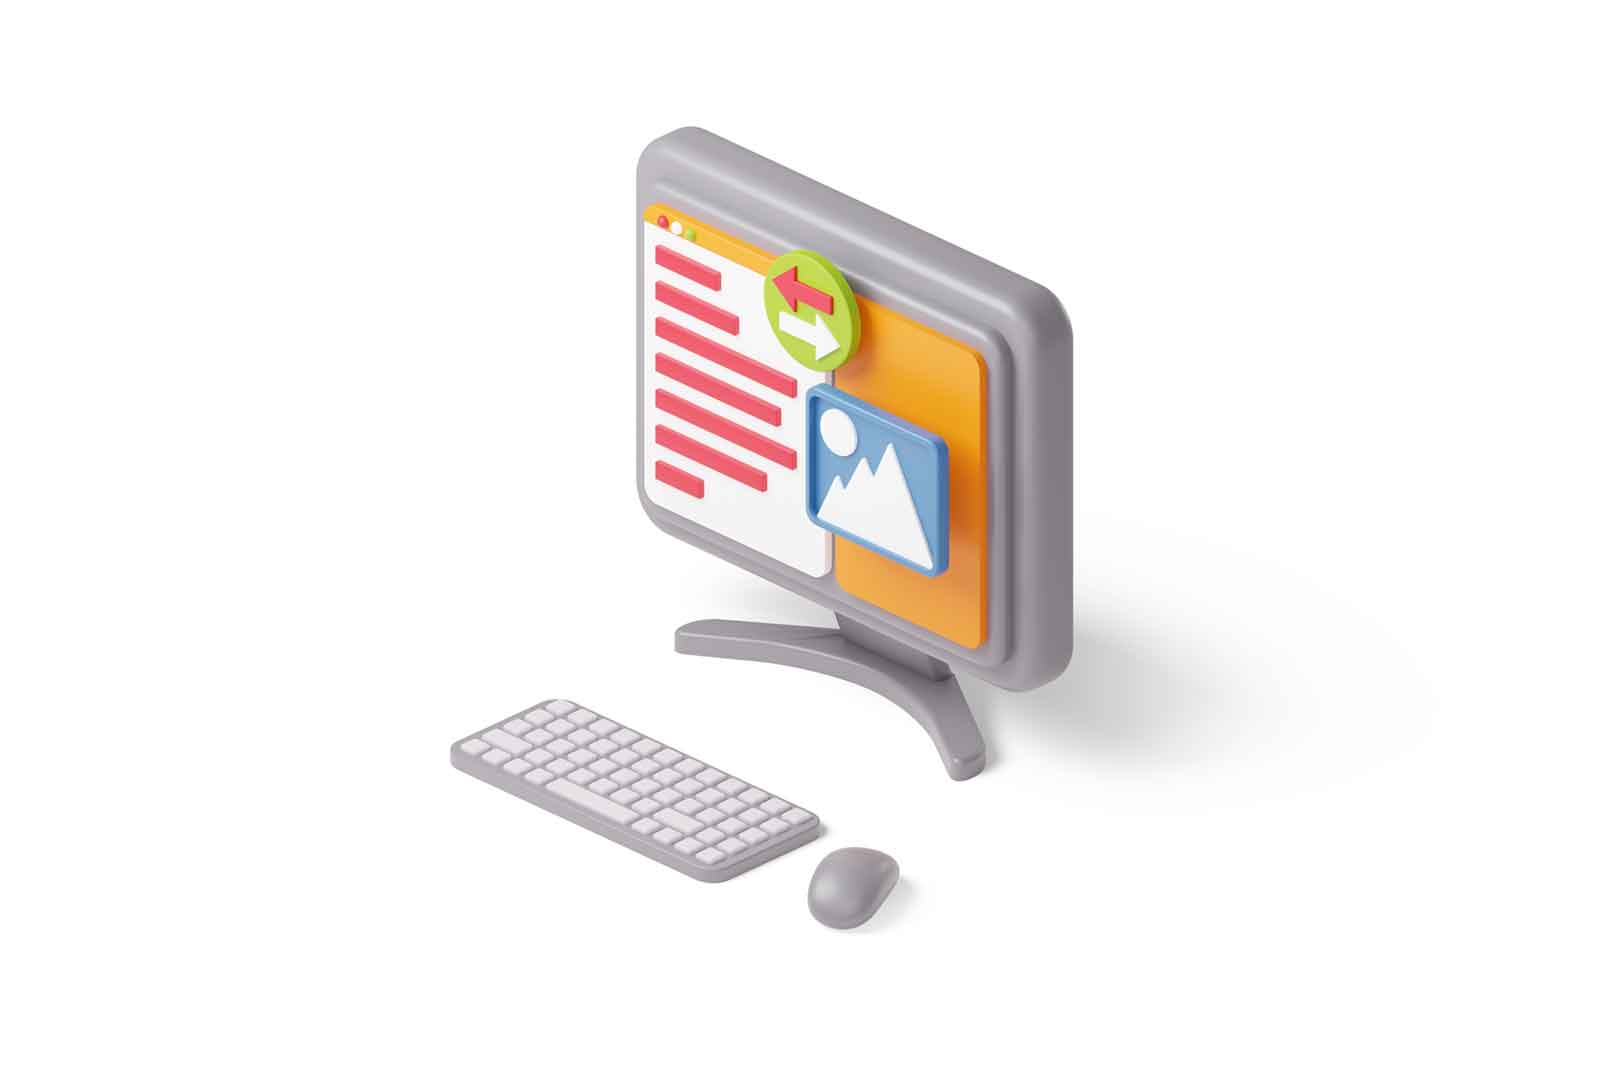 Modern computer, keyboard and mouse 3d illustration. Isometric personal computer. Website programming and coding. Web development concept